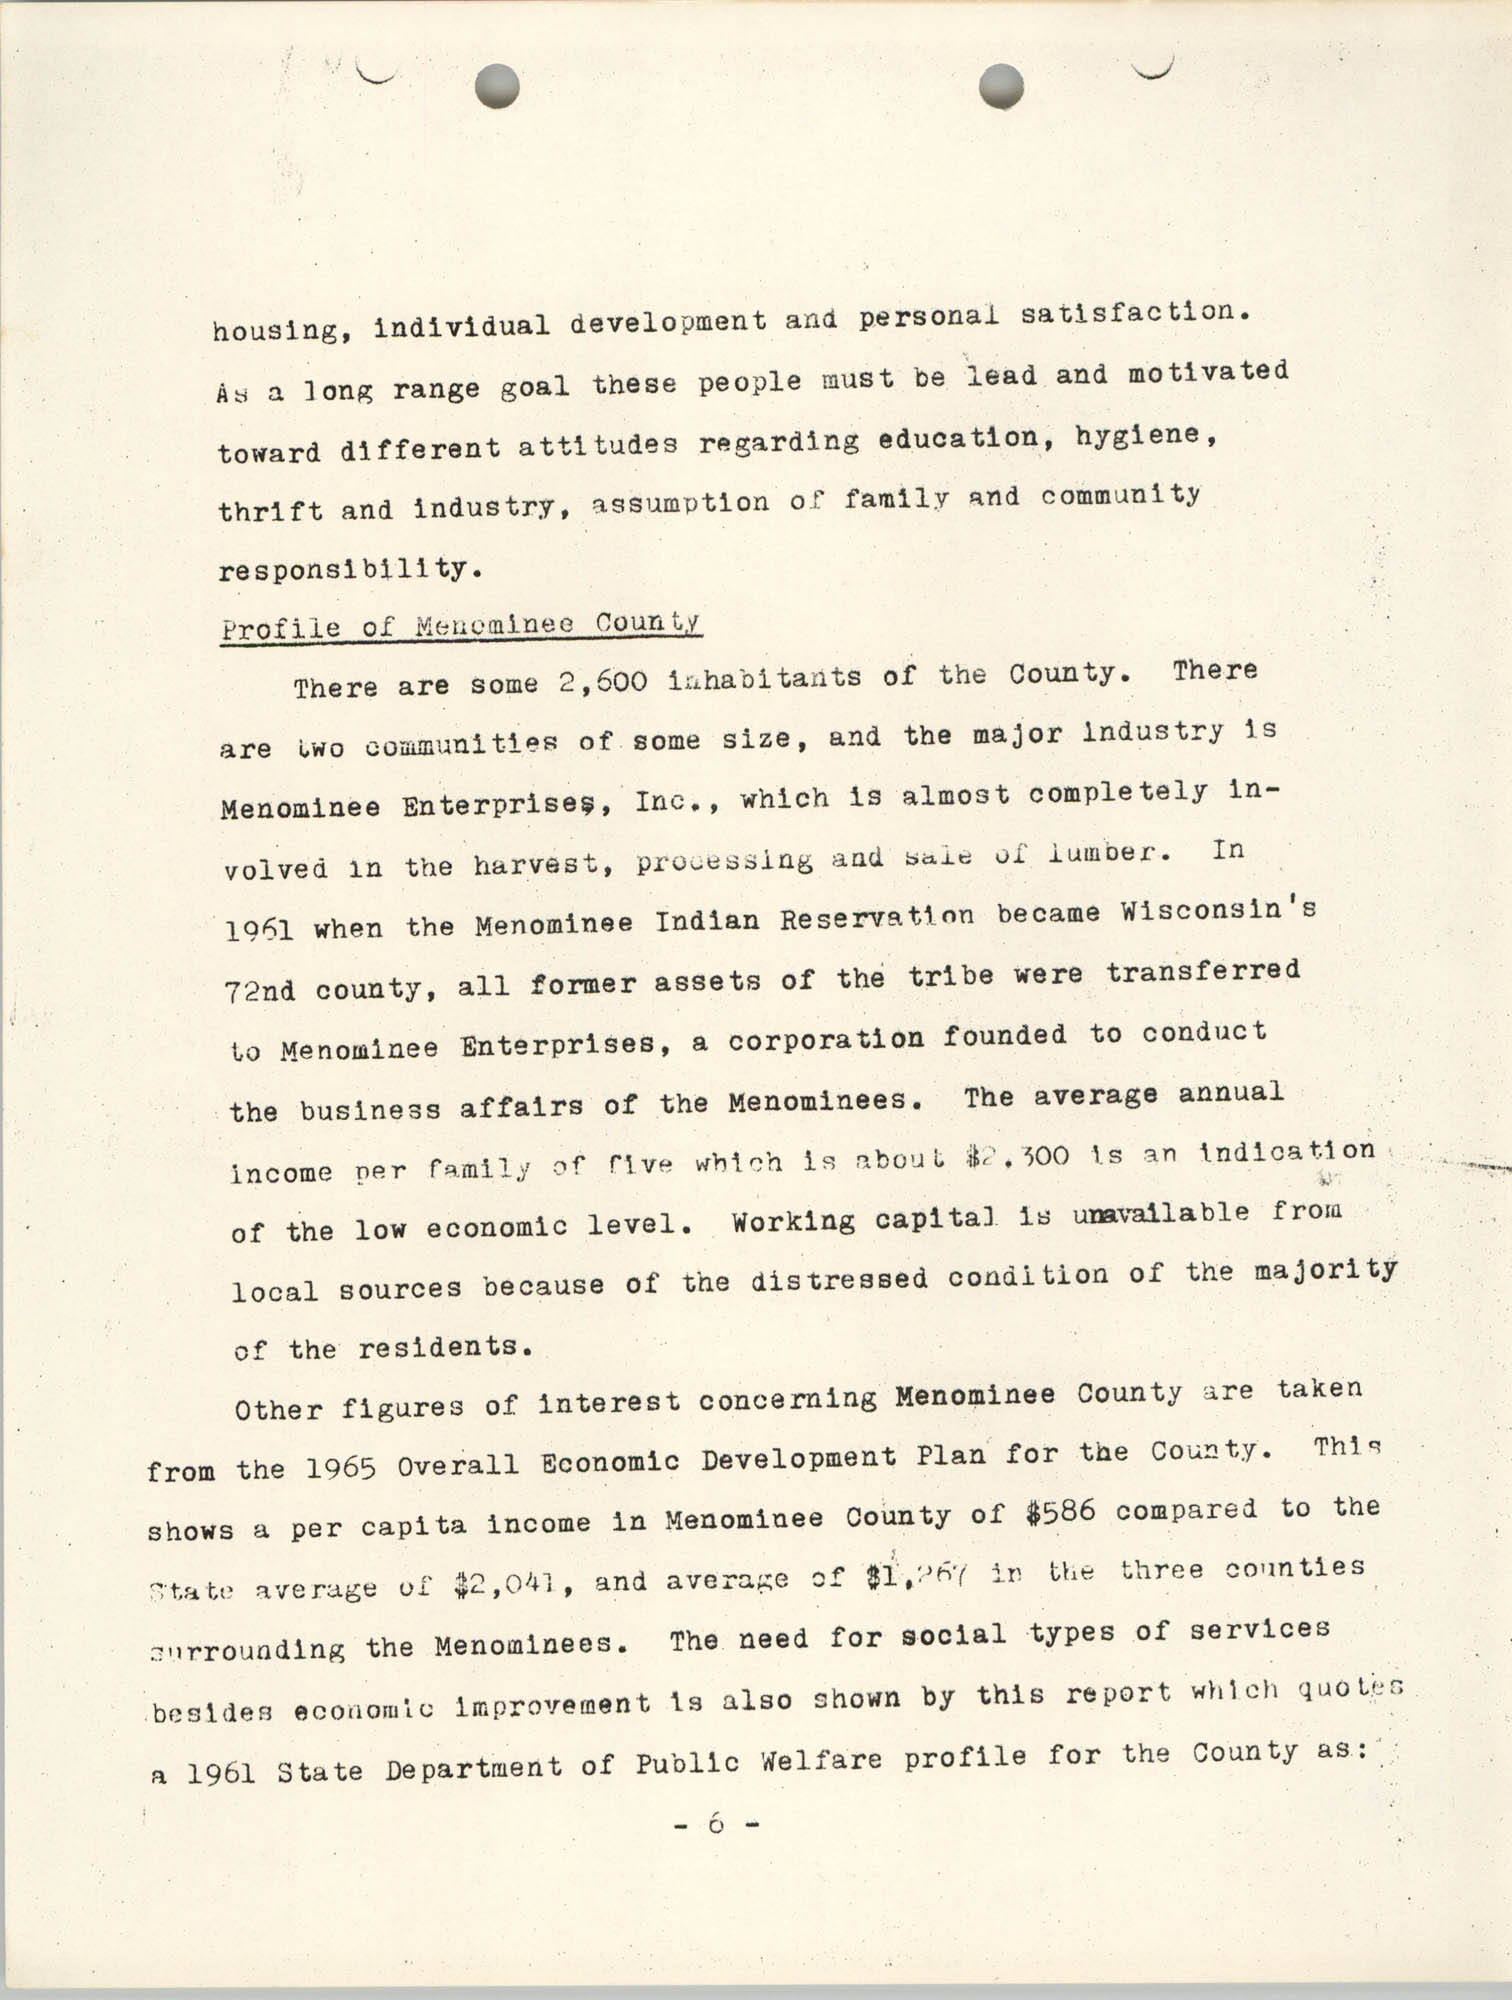 Work Program for the Menominee CAP, Page 6